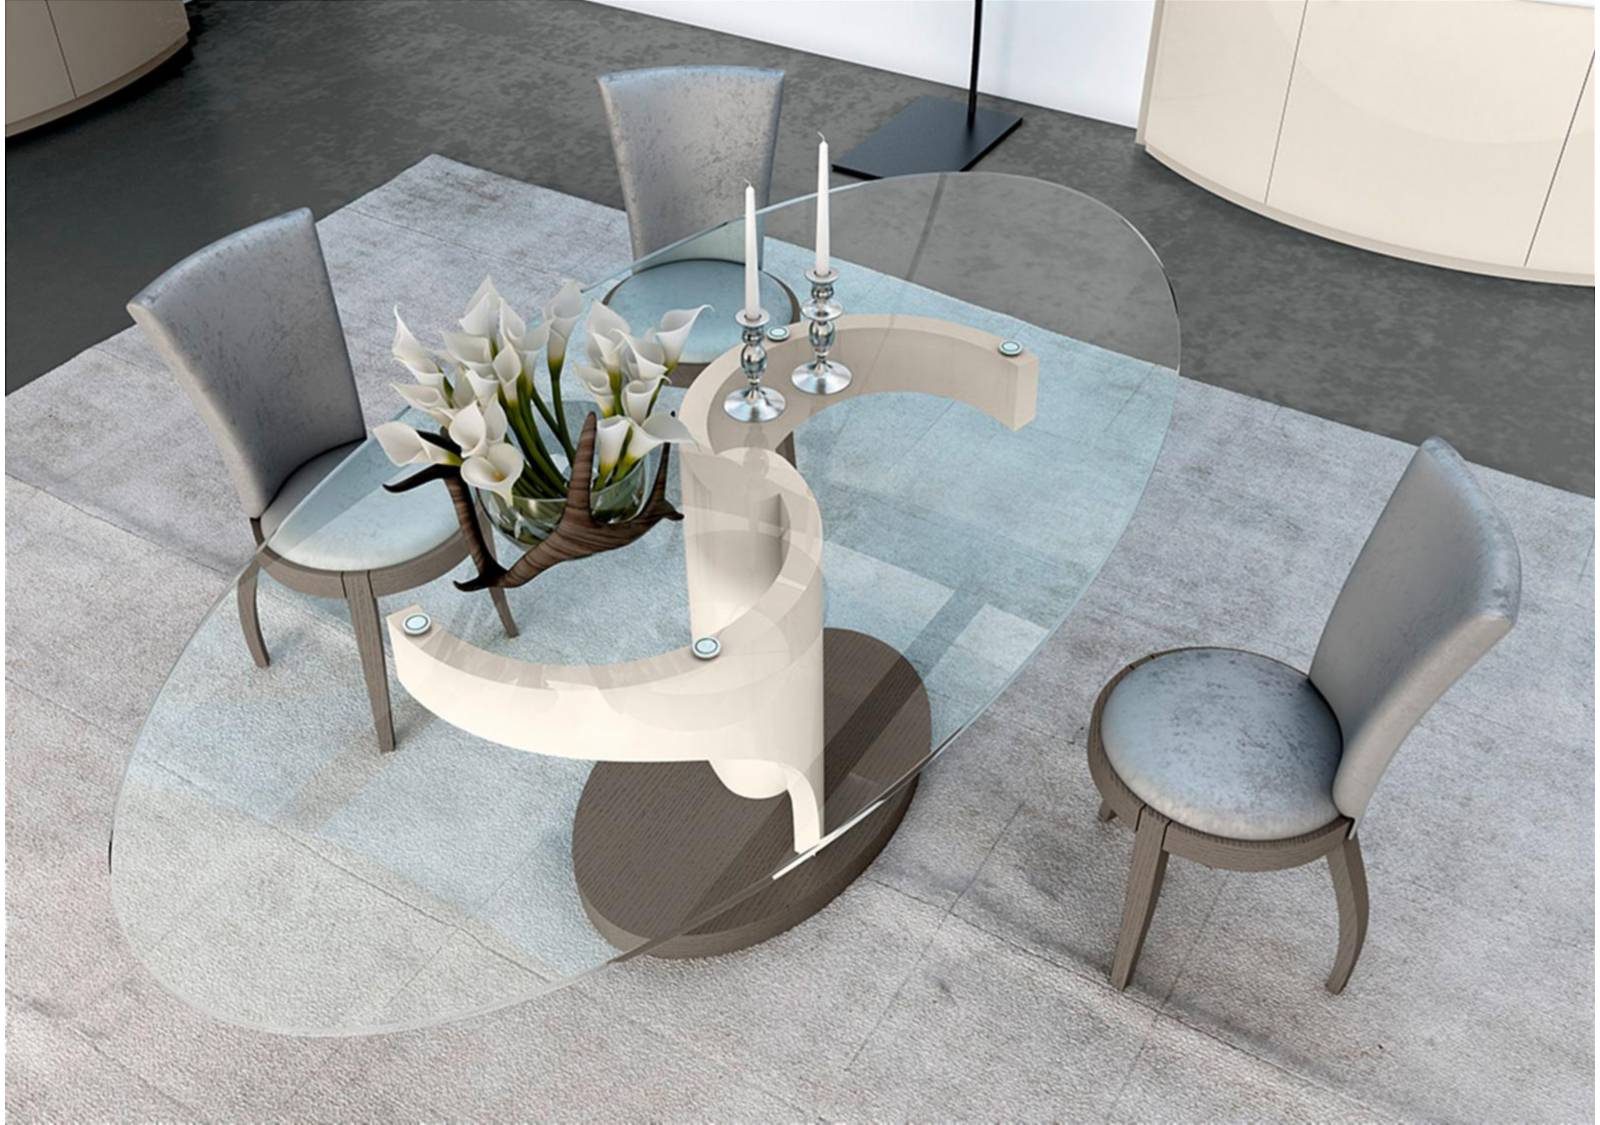 Aleal Candy Dining Table Vale Furnishers